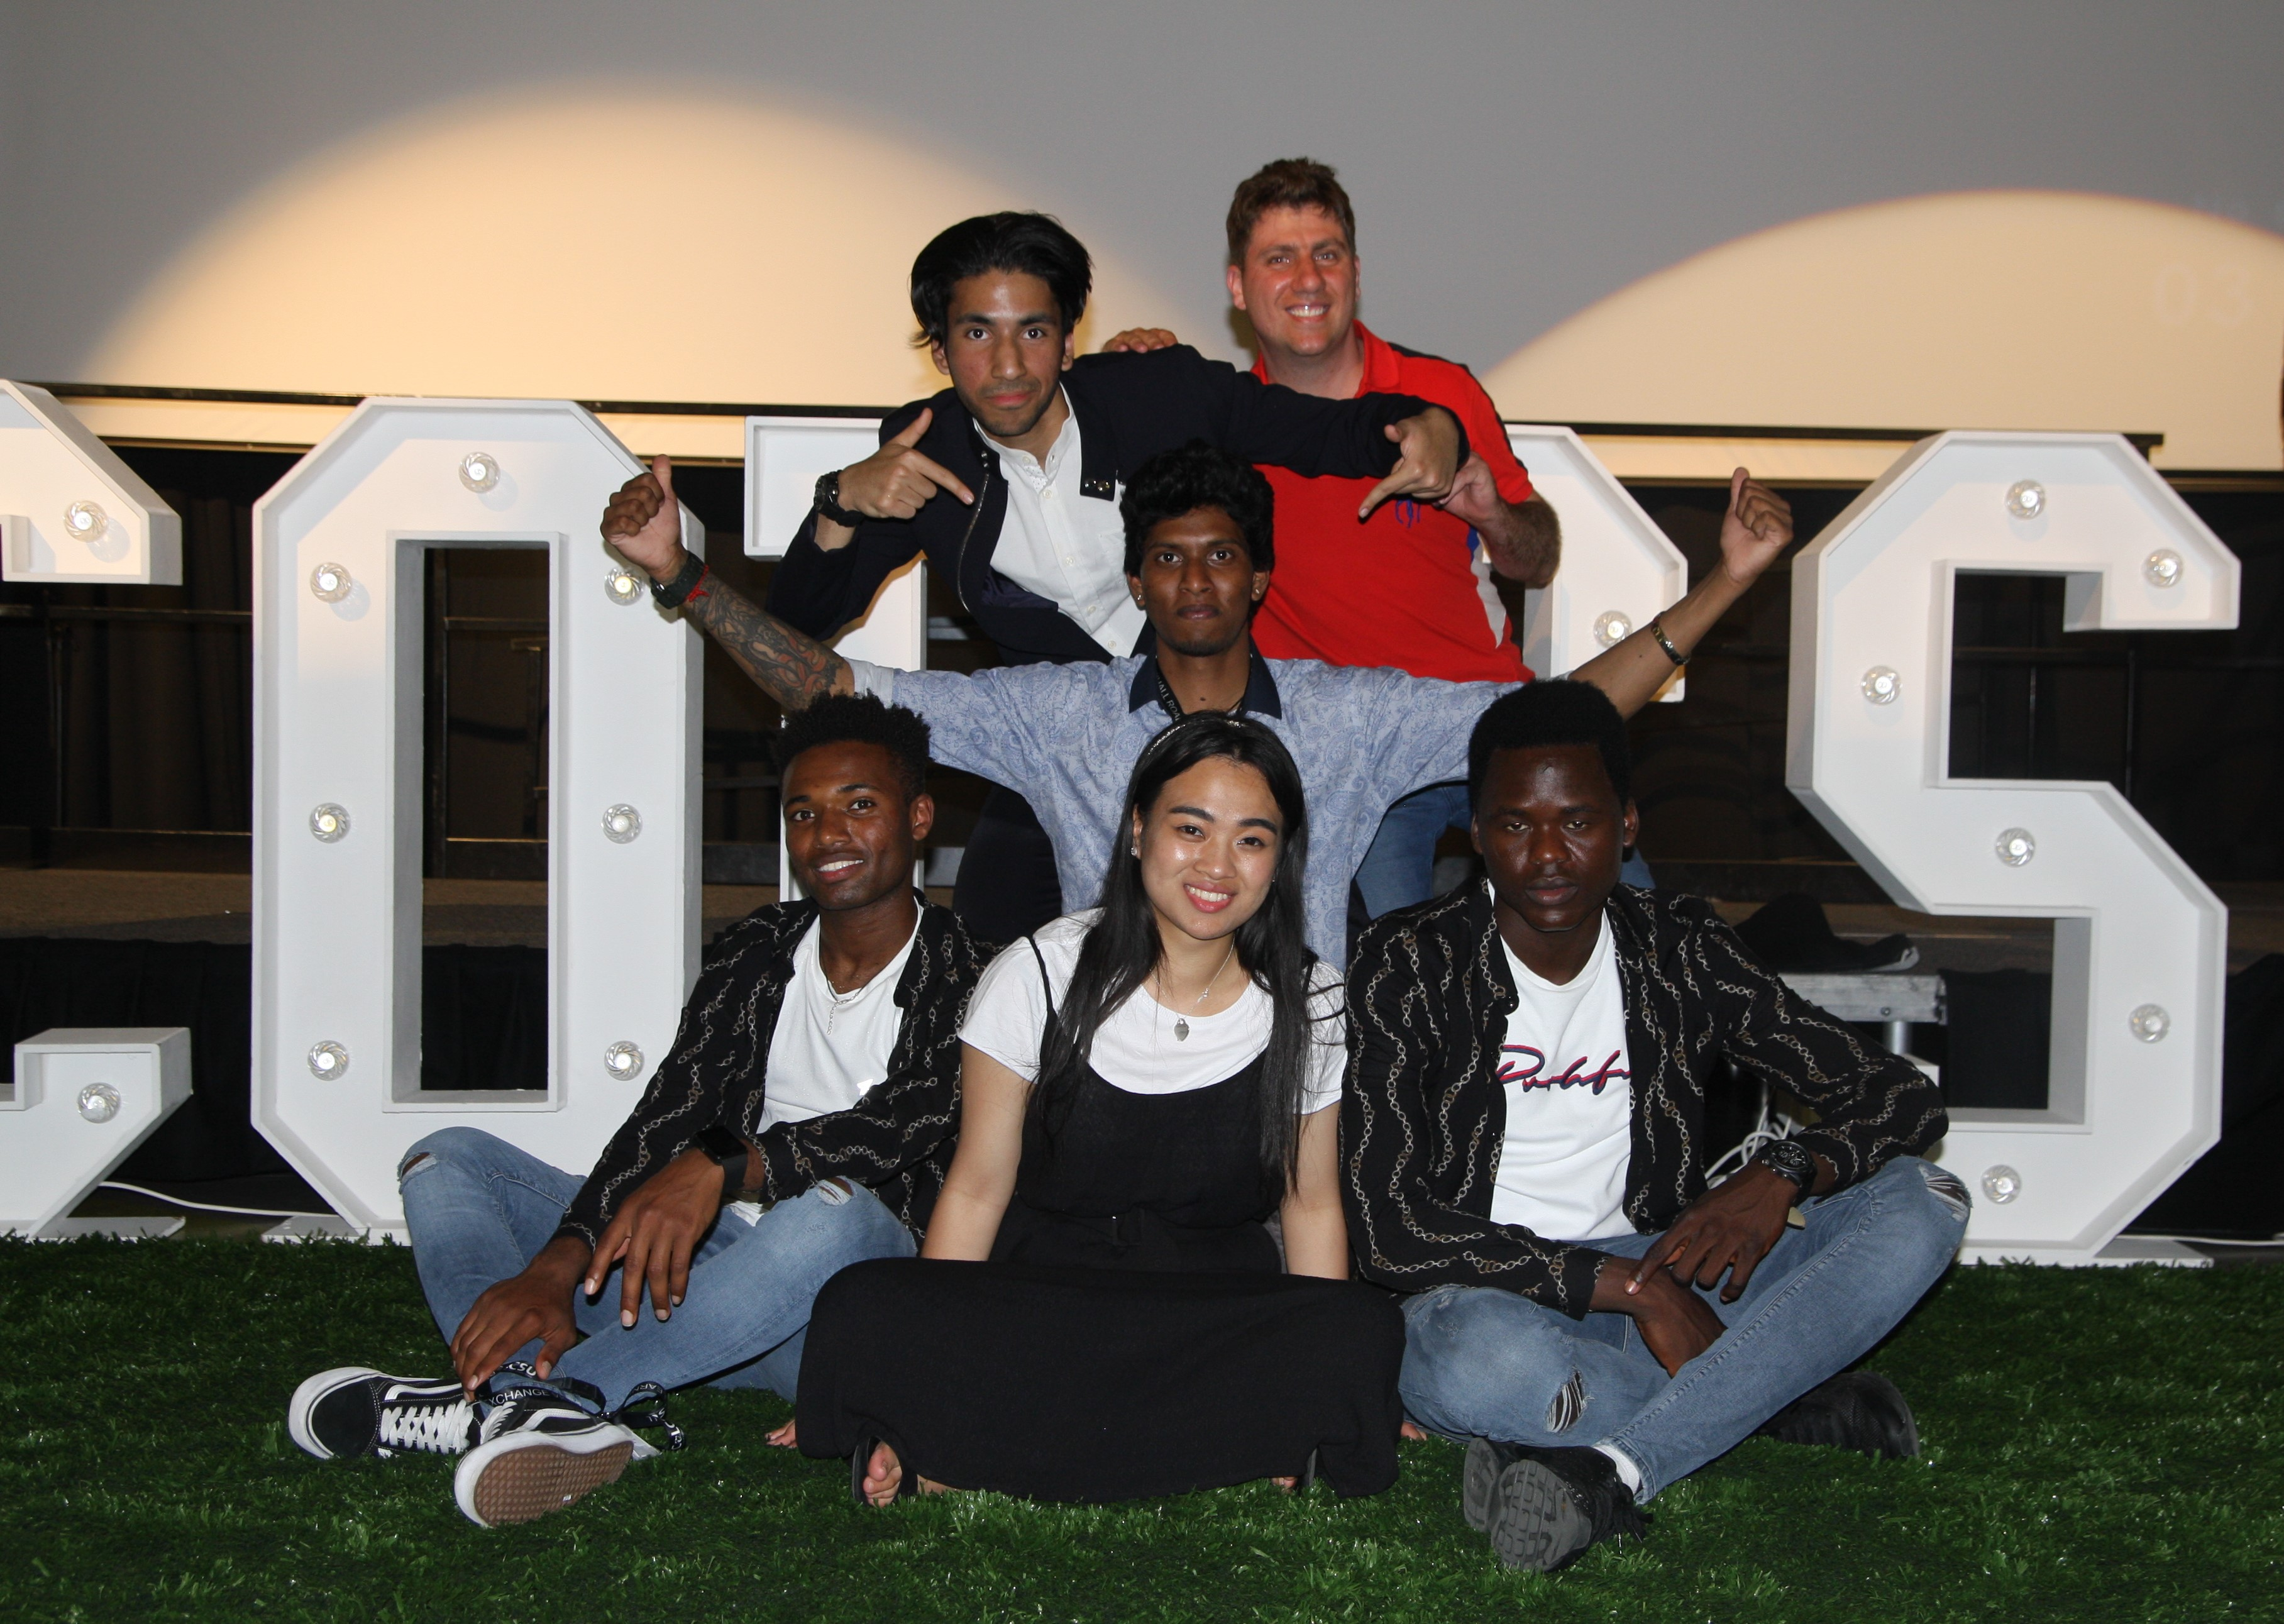 The Students' Union posing in front of CoLCSU logo